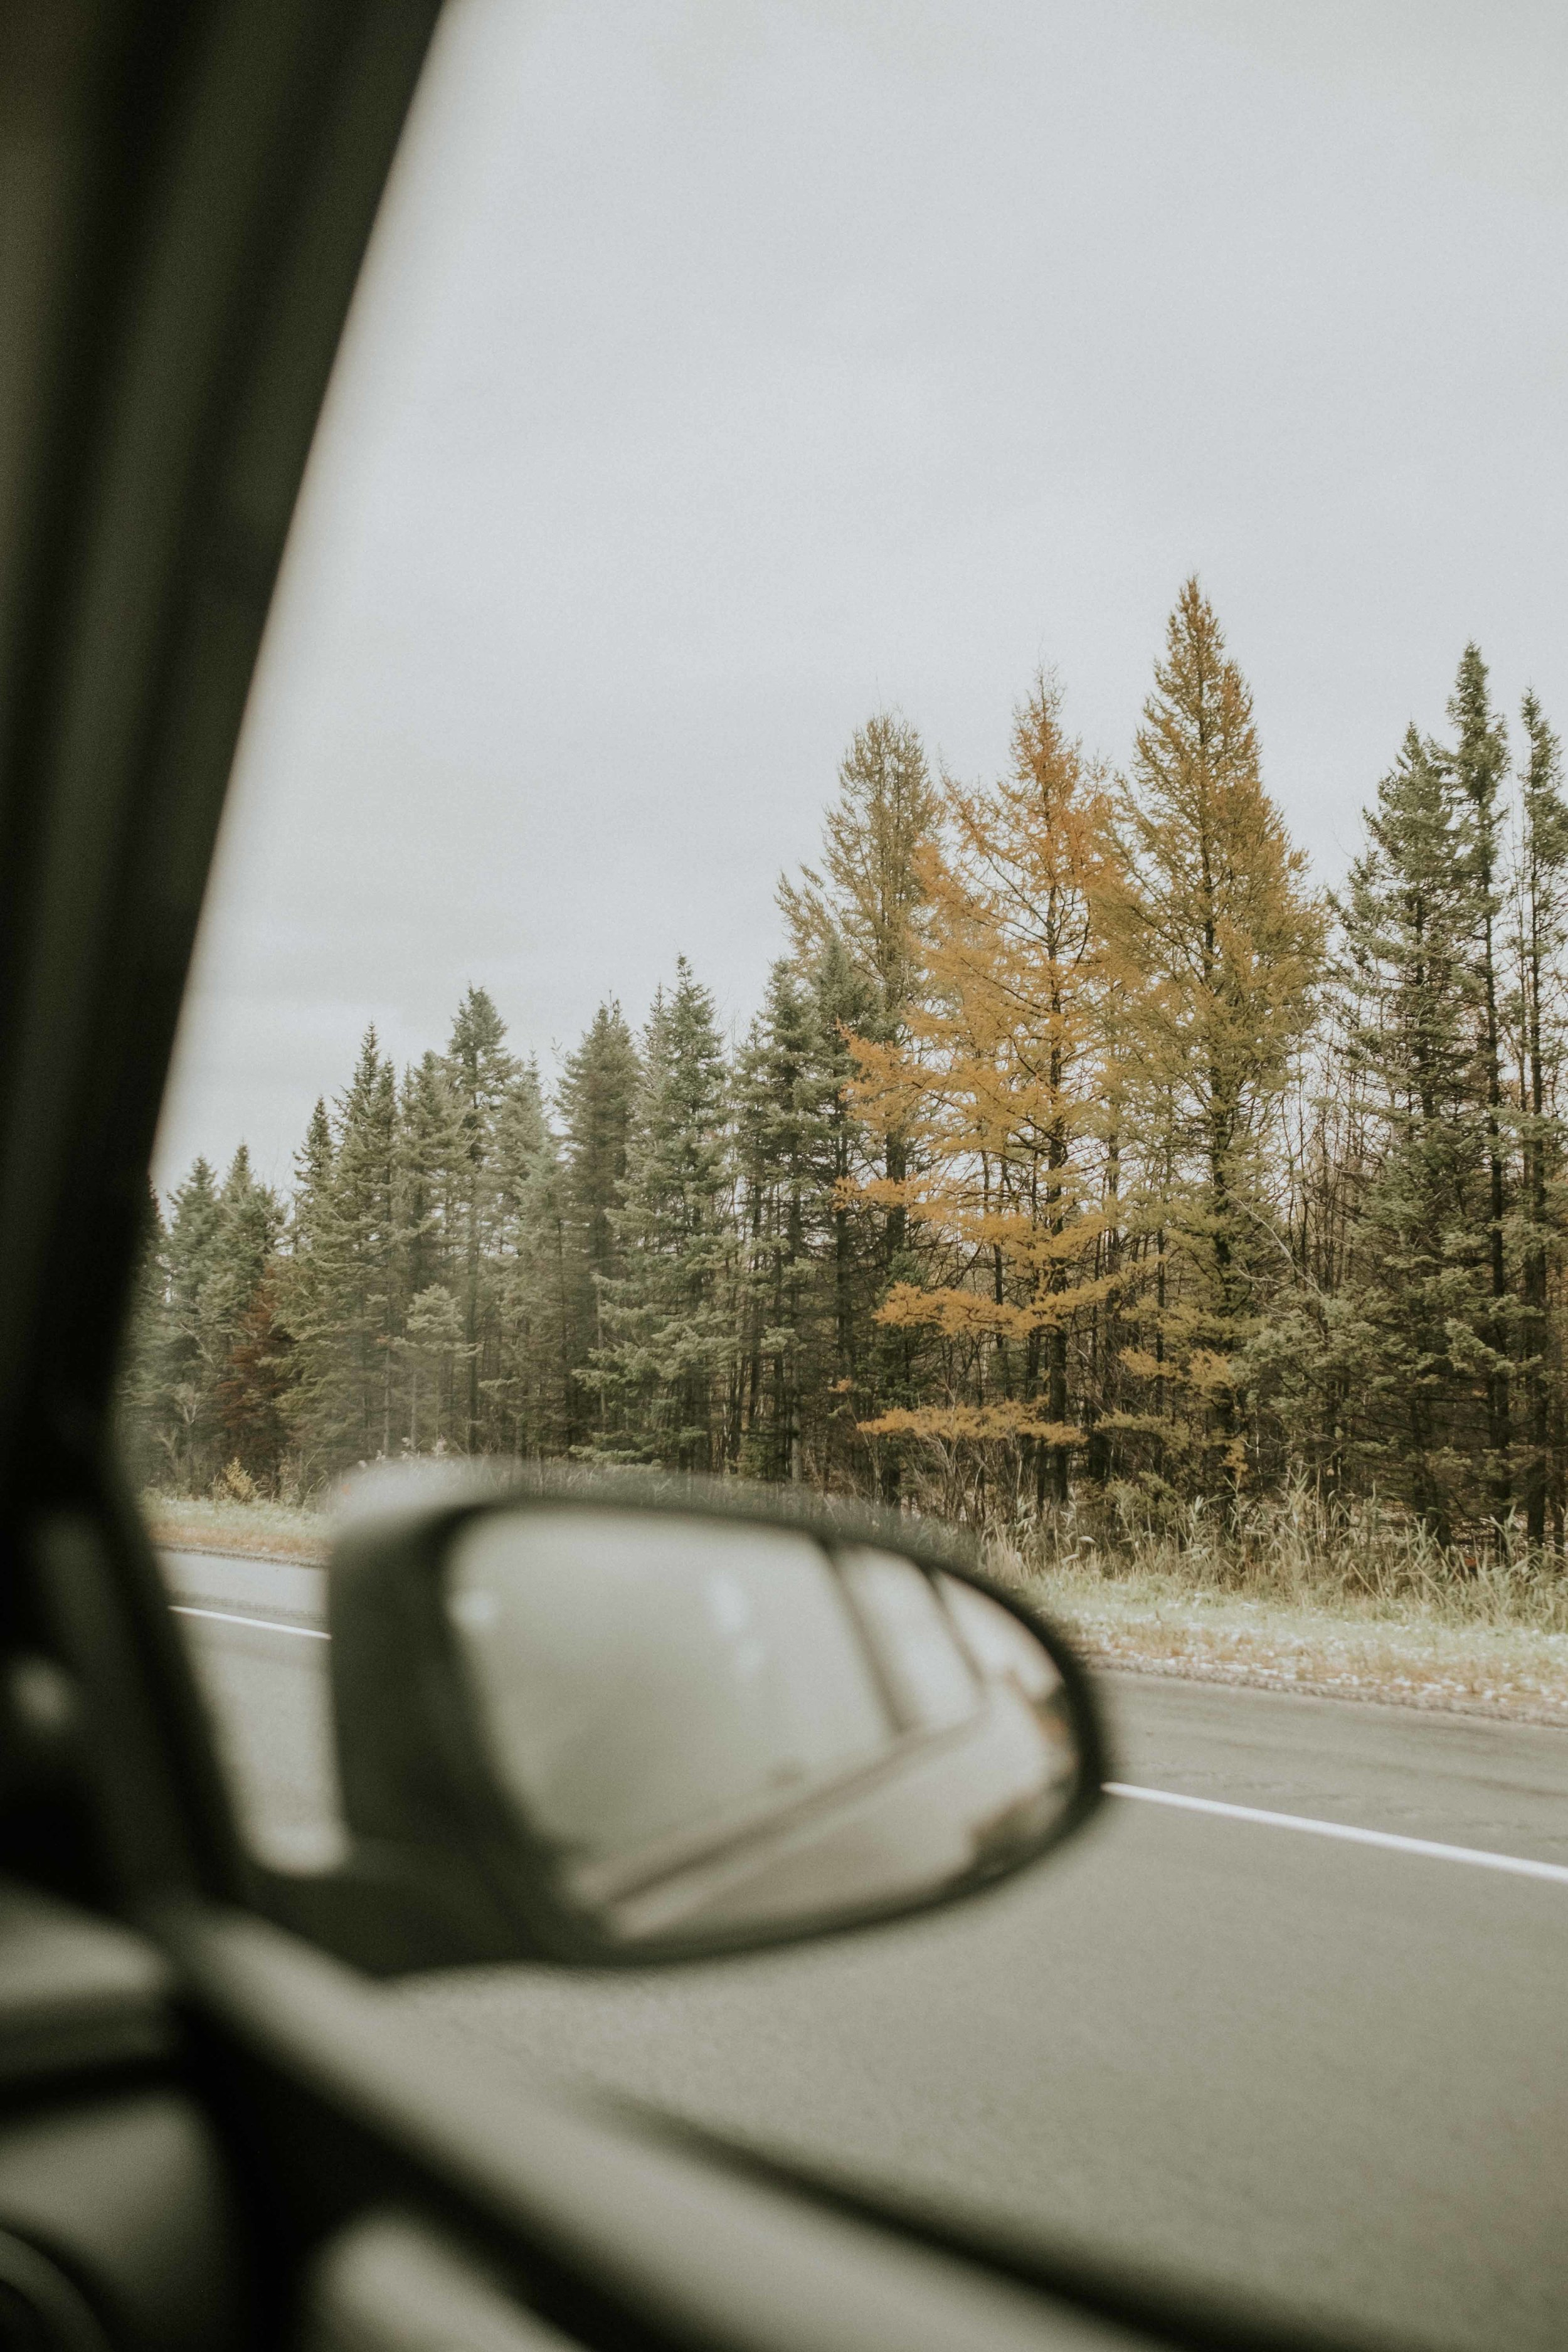 Driving to Quebec City!